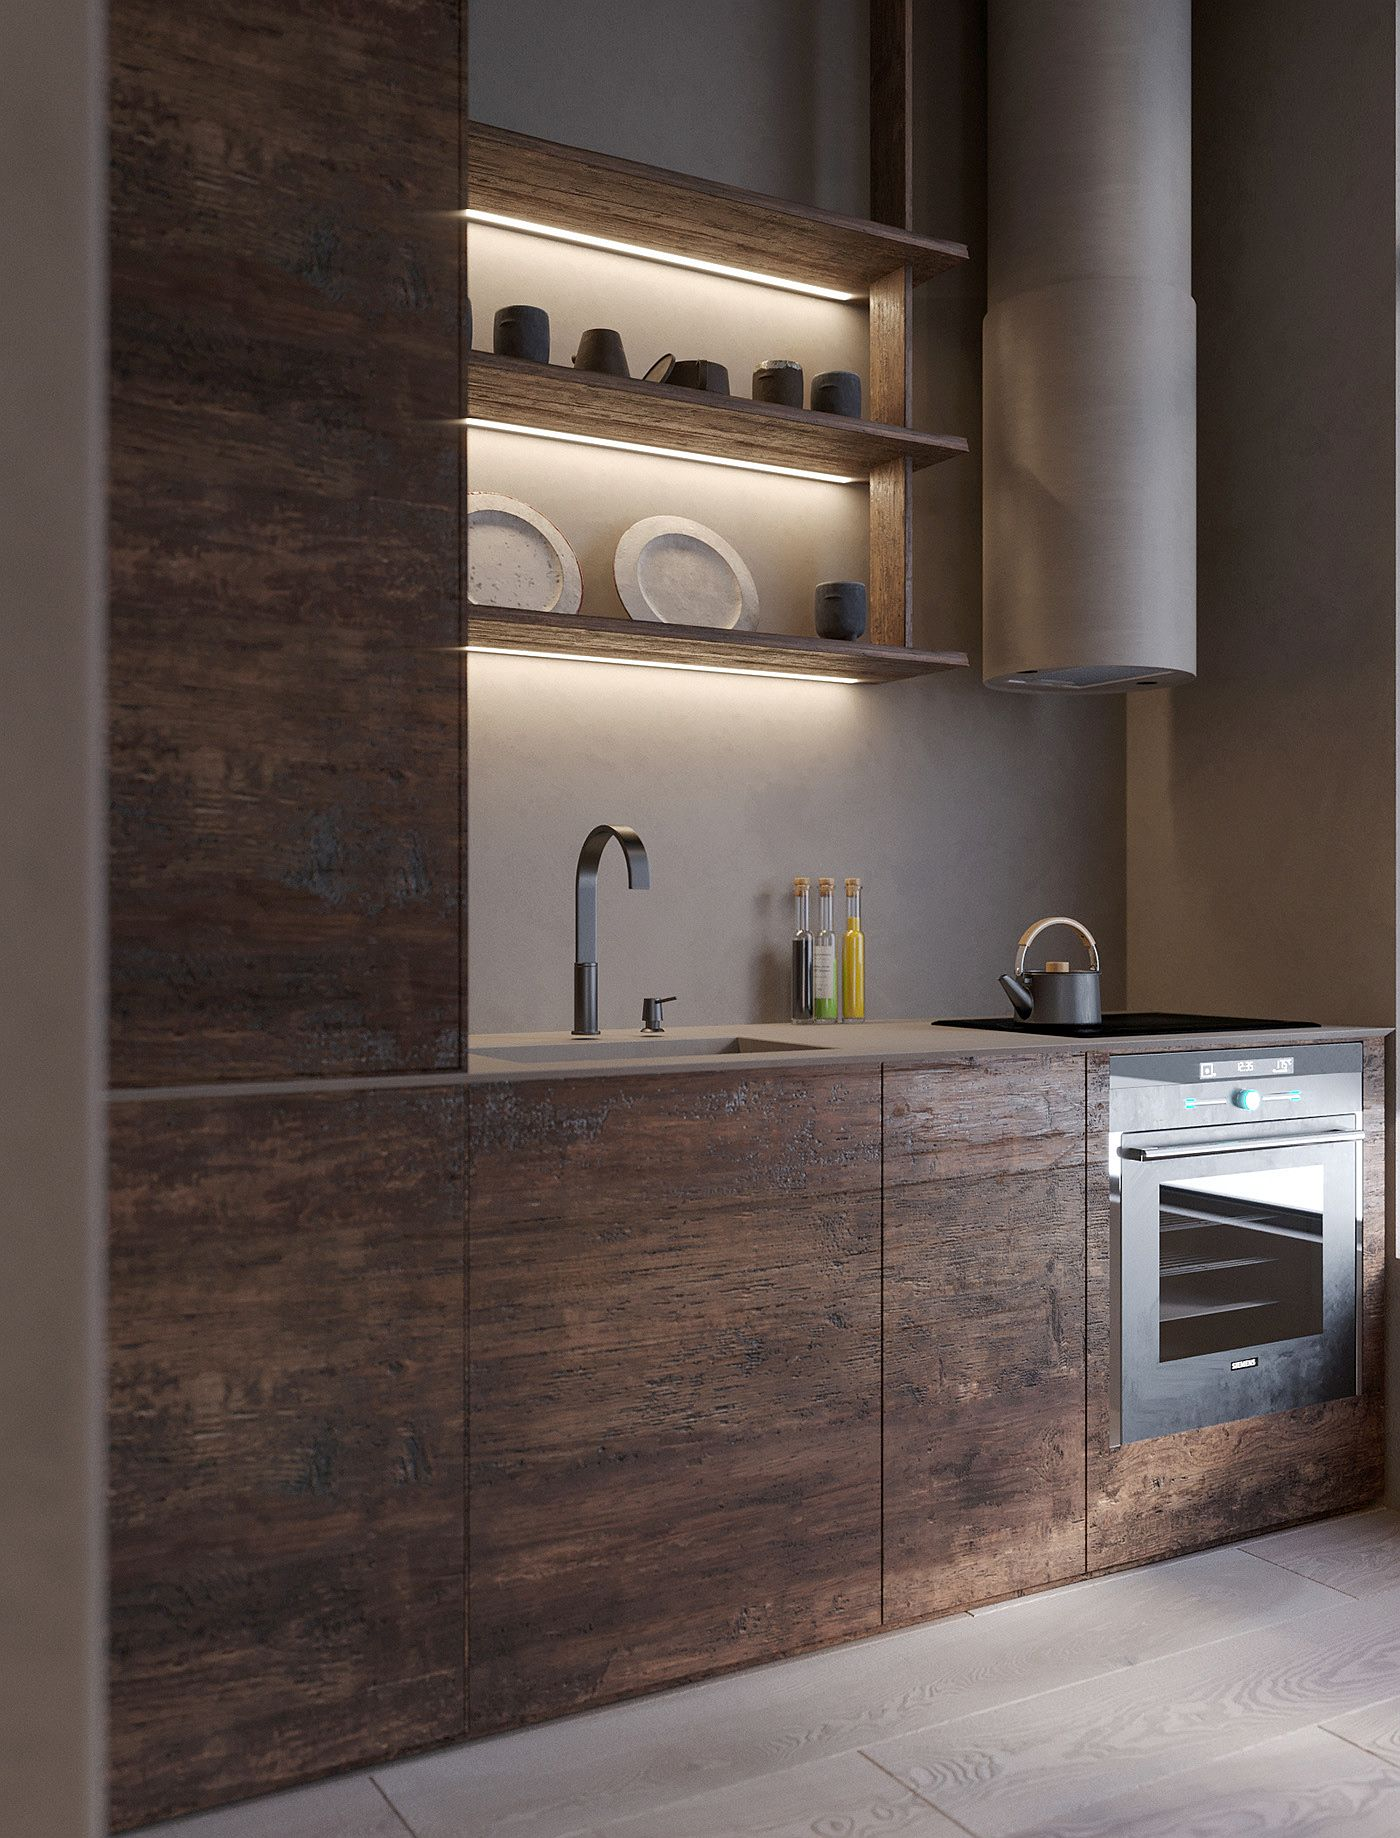 Matte finish of the kitchen wooden cabinets along with lighting give it a cozy appeal